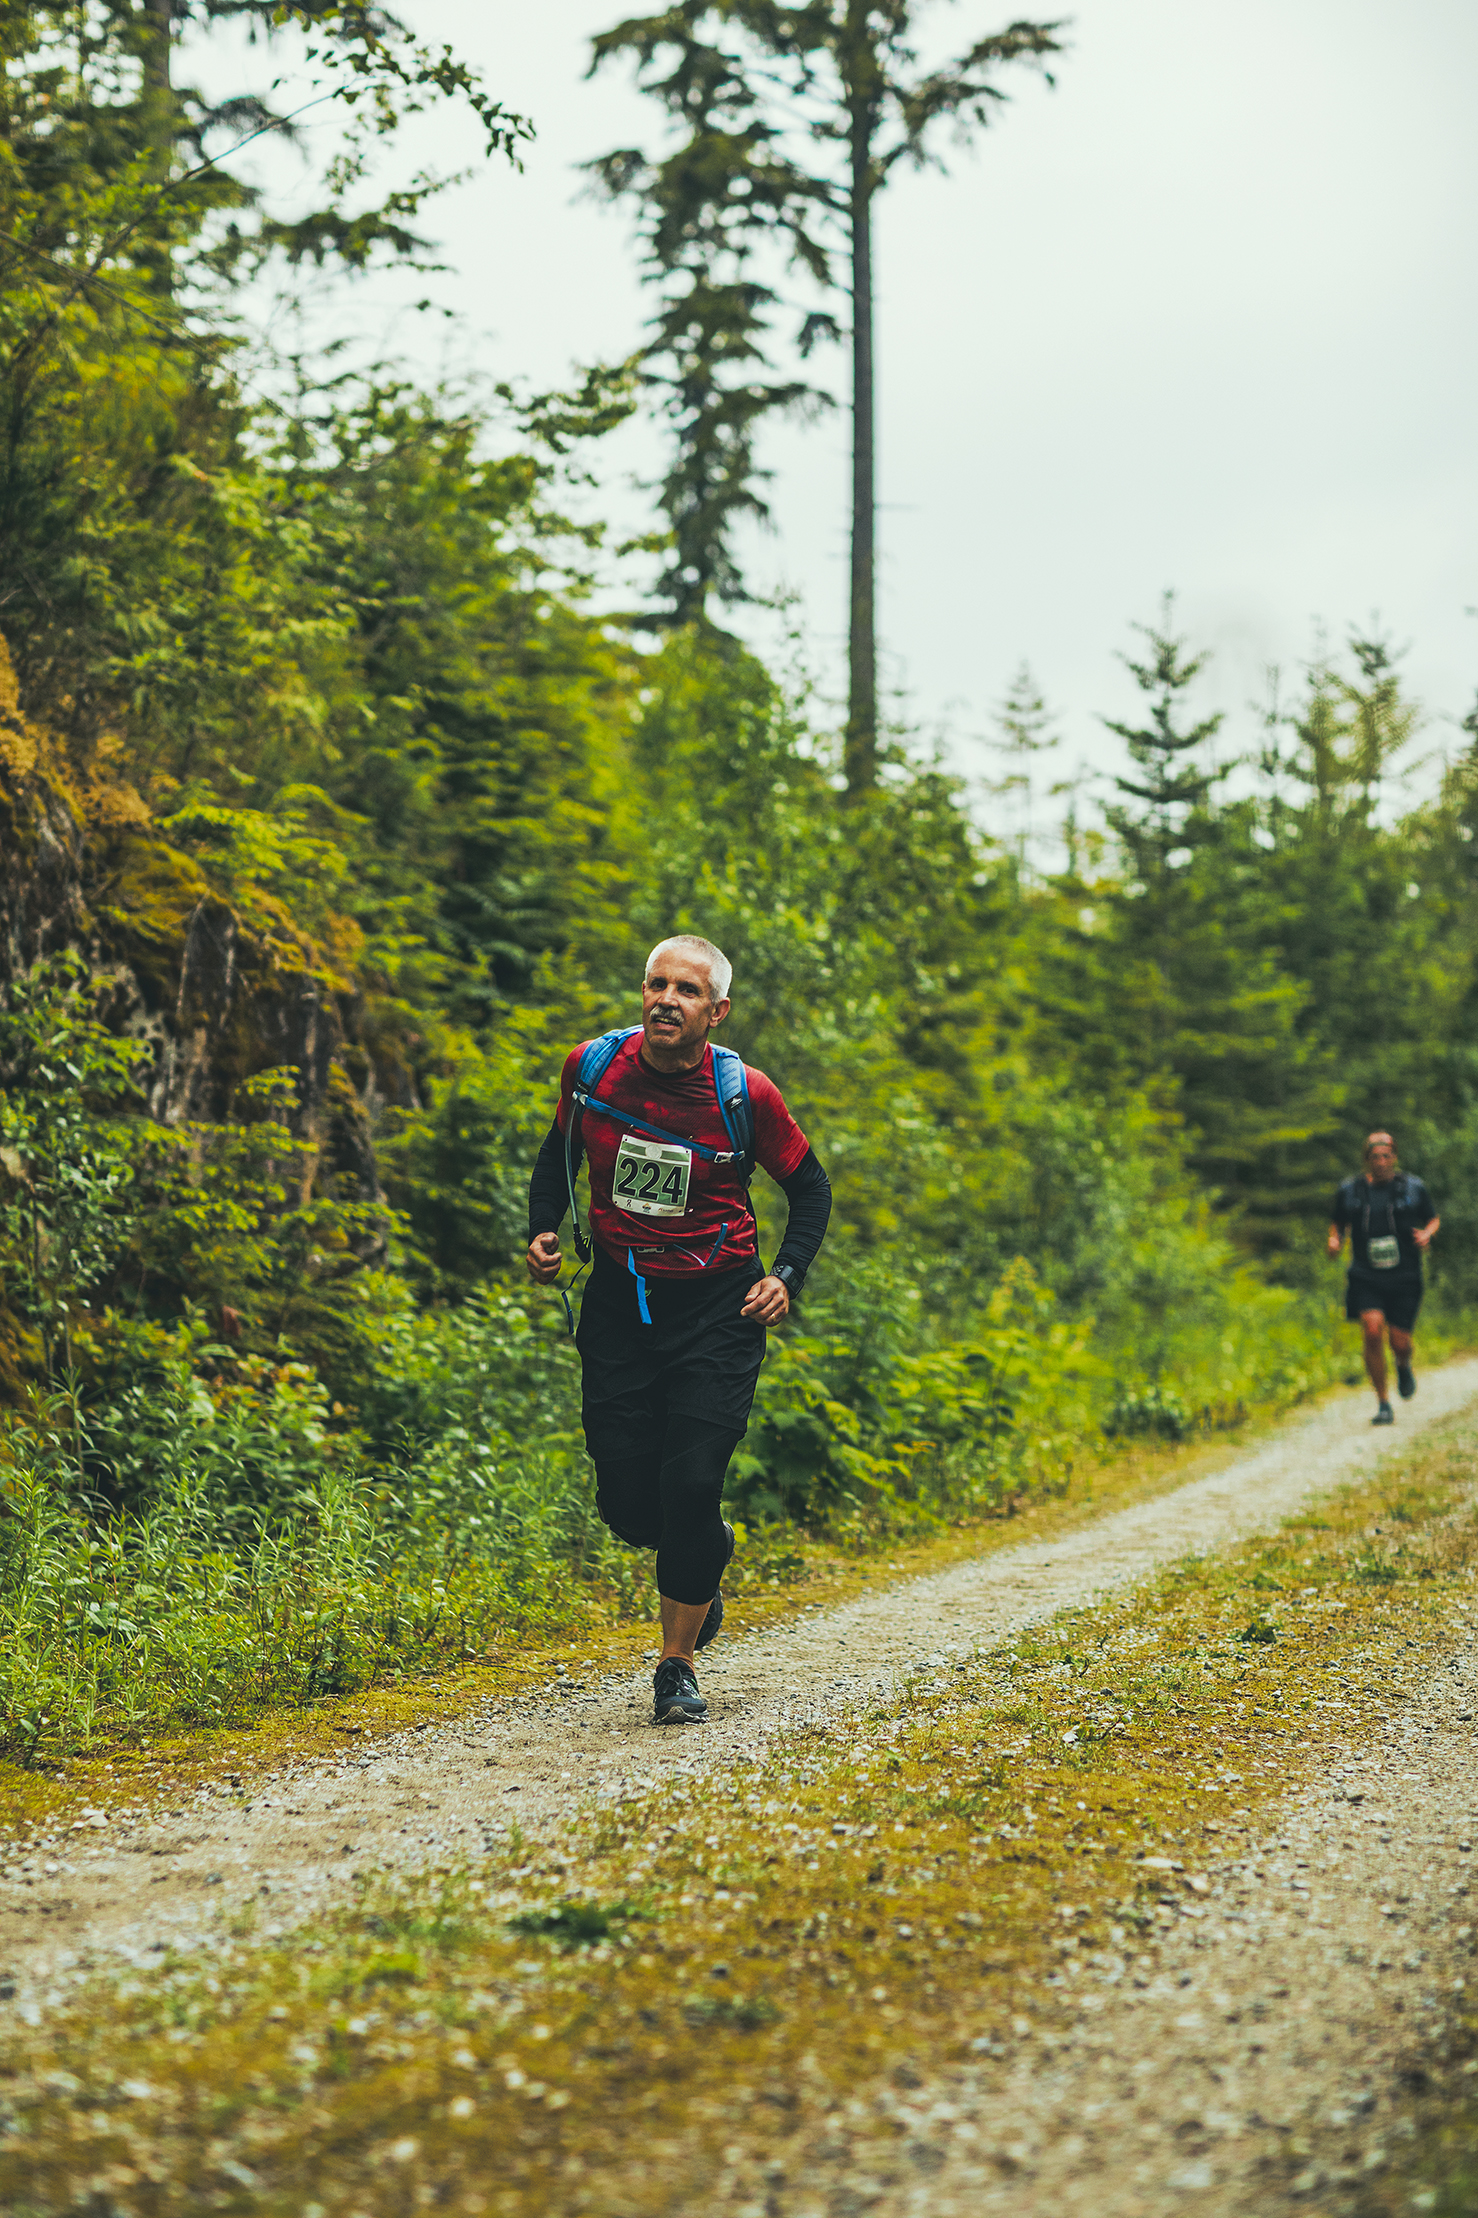 Fraser Valley Trail Races - Bear Mountain - IMG_1740 by Brice Ferre Studio - Vancouver Portrait Adventure and Athlete Photographer.jpg